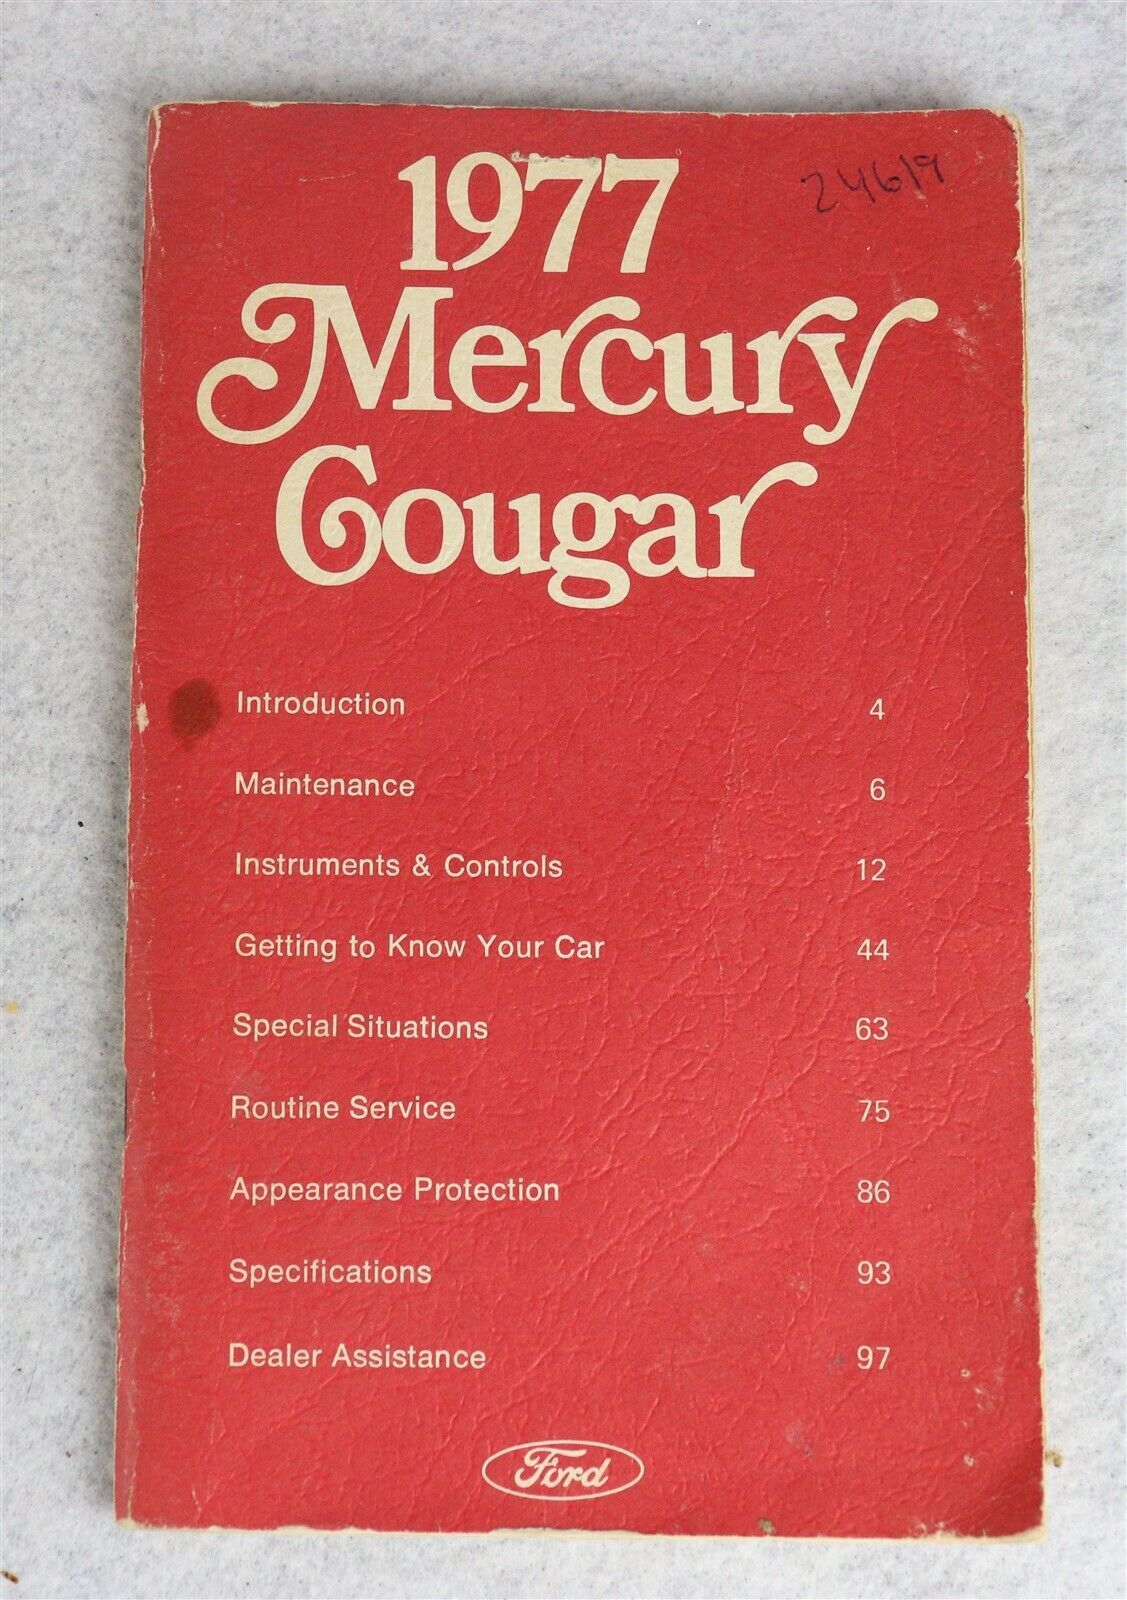 1977 Ford Mercury Cougar Owner's Manual